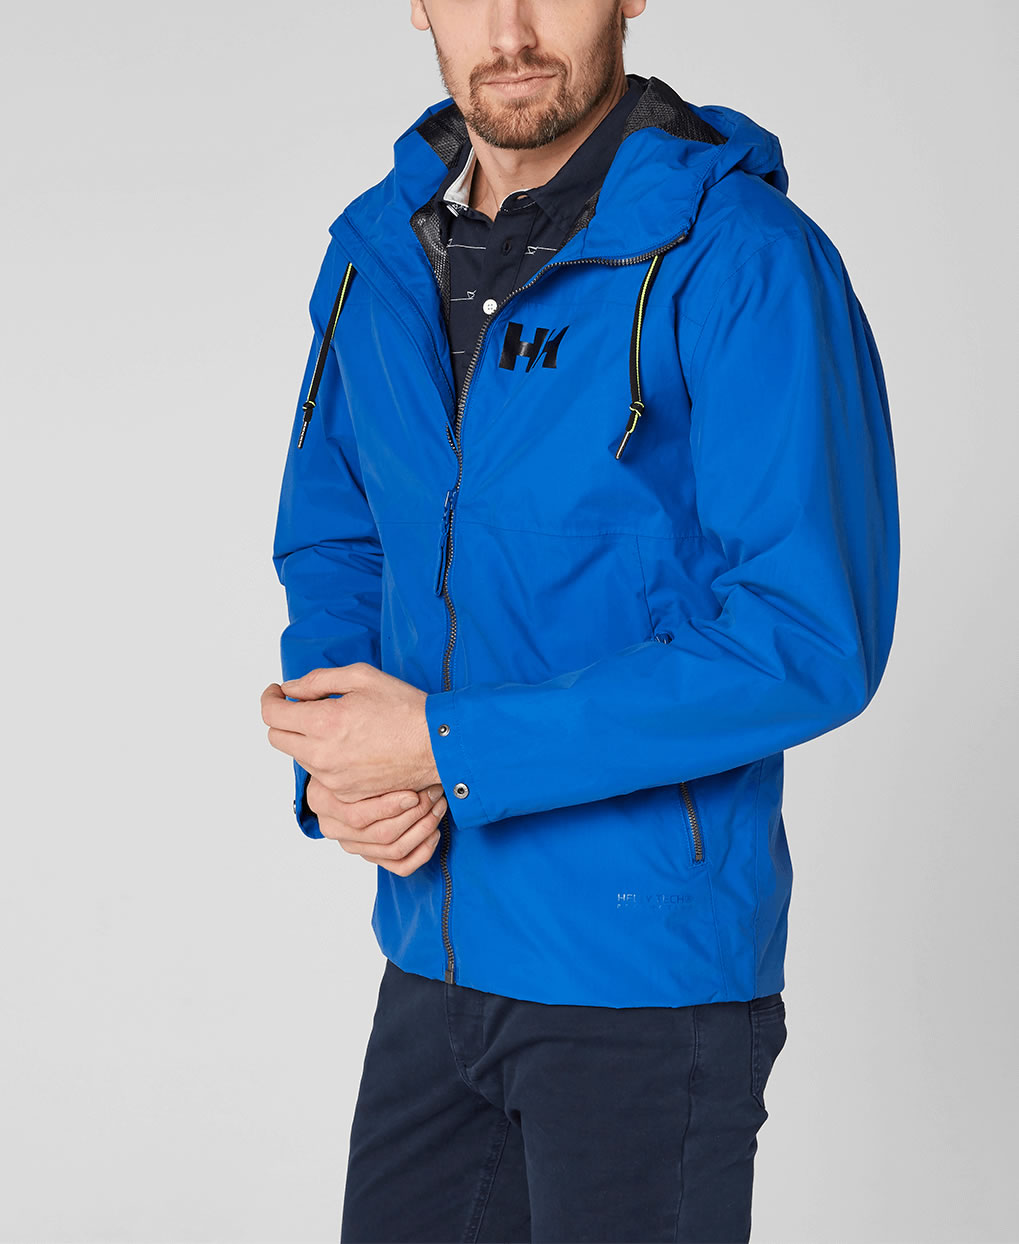 Helly Hansen rain jacket for Men